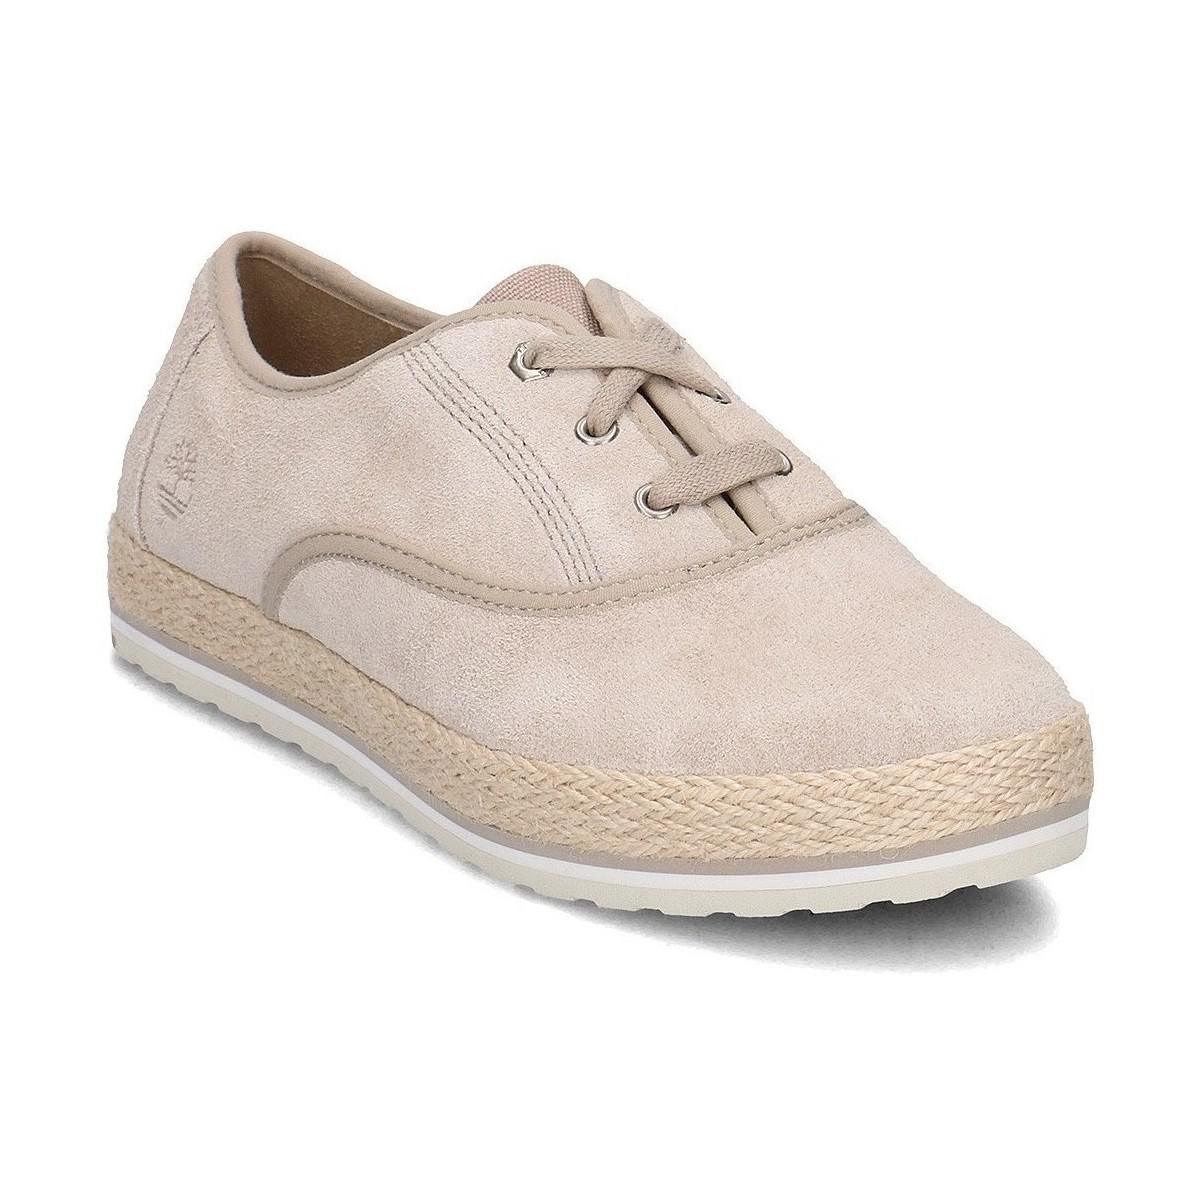 Clearance For Sale Clearance Nicekicks Timberland Eivissa women's Shoes (Trainers) in GUyTmH